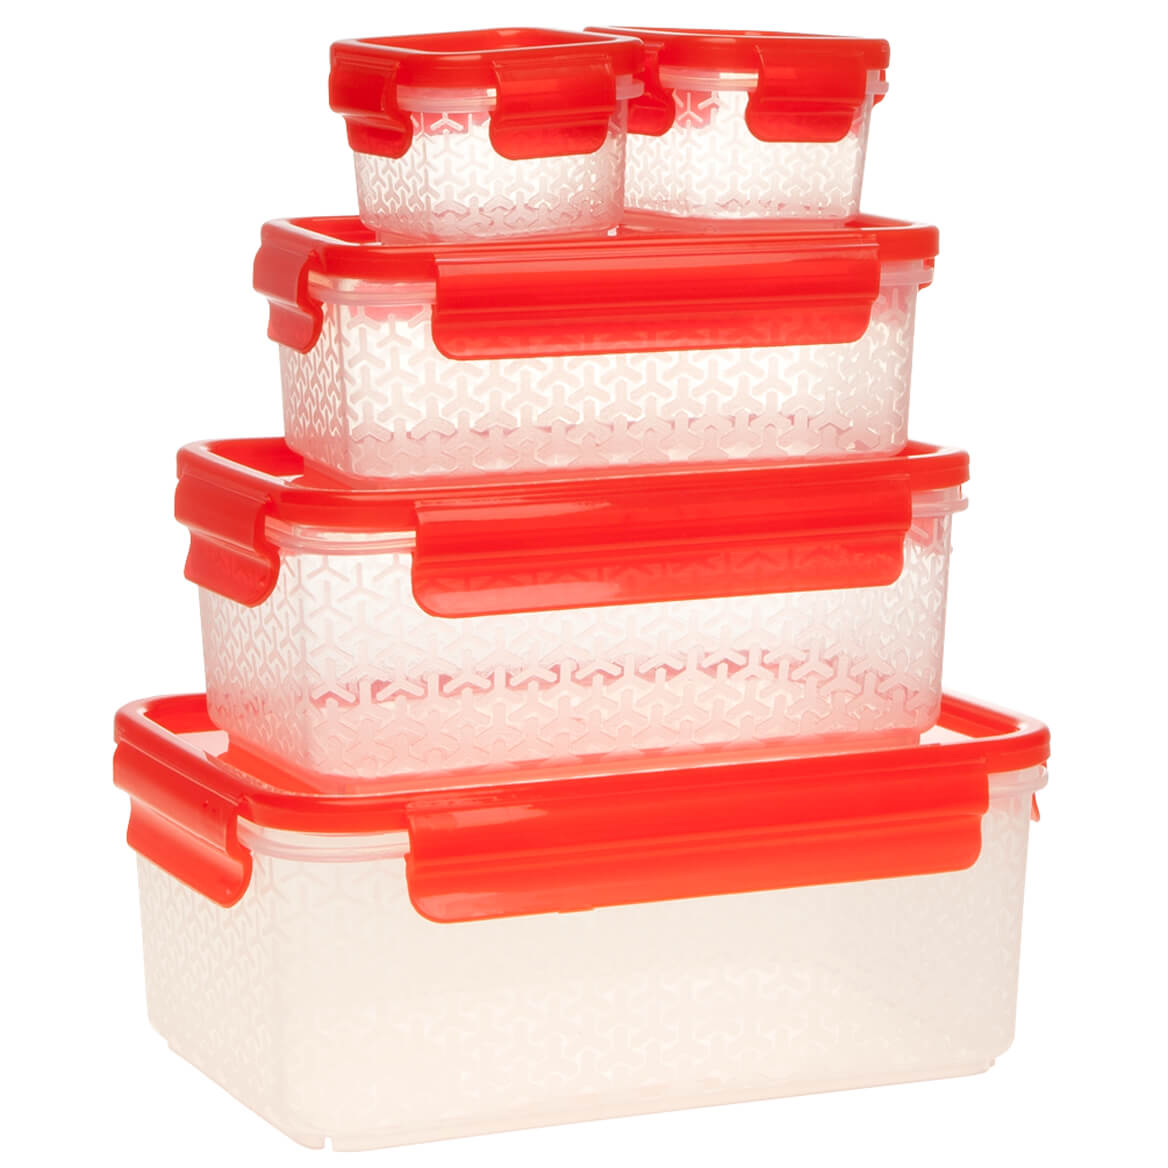 Nested Food Containers, 10 pc Featuring airtight lids that attach and detach with handy pull tabs, these nested food containers stack efficiently in fridge, freezer or pantry--then nest neatly for space-saving storage. A smart solution for organized food storage and transport, the clear, reusable storage containers are designed in durable BPA-free plastic and safe for microwave and dishwasher. Set of 10 kitchen containers includes: two 3-oz. containers with lids (2 1/2  x 2 1/2  x 1 3/4  H), one 13.5 oz. container with lid (6  L x 3 1/2  W x 2 1/4  H), one 27-oz. container with lid (7  L x 4 1/2  W x 2 1/2  H) and one 54-oz. container with lid (8 1/4  L x 5 1/2  W x 3 1/16  H).